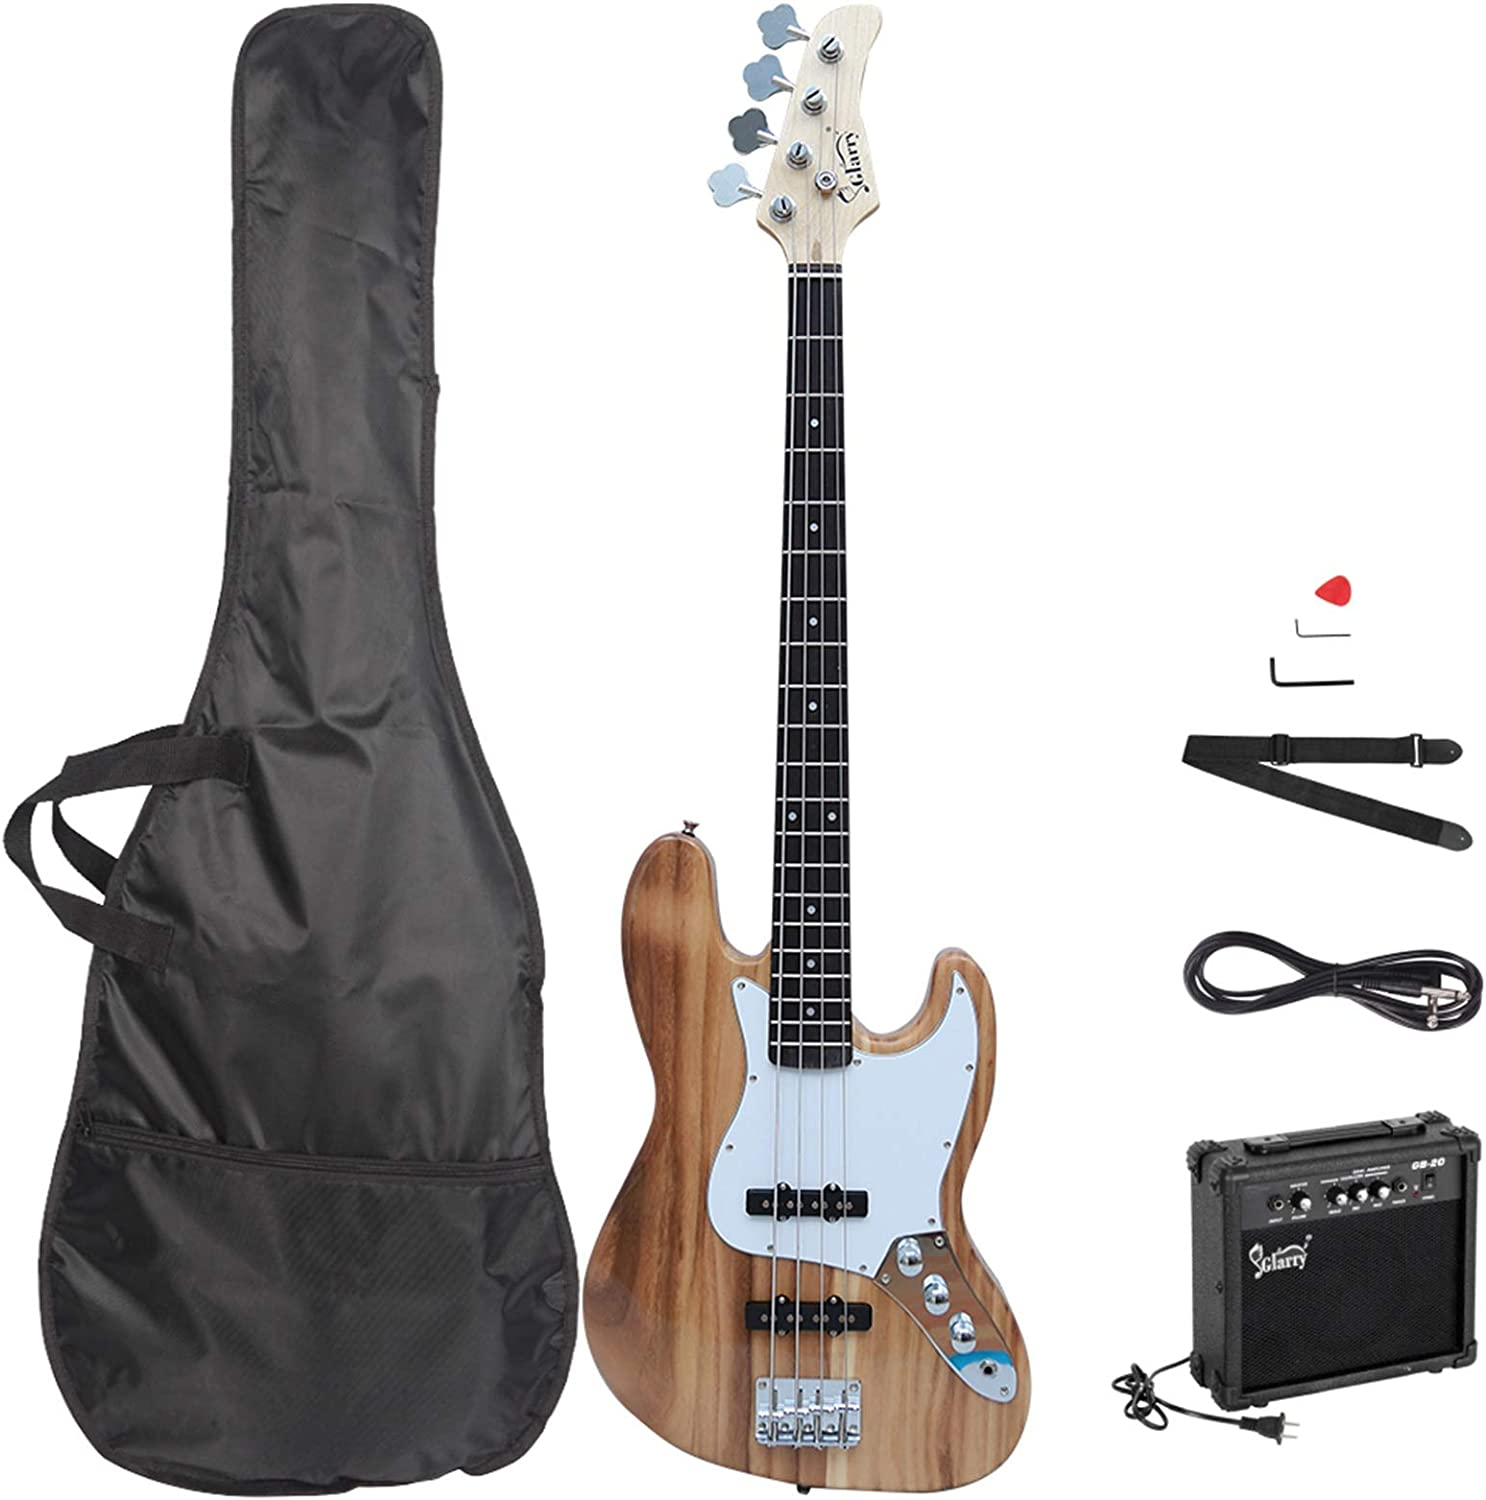 Jazz Electric Bass Guitar; Exquisite Basswood Electric Bass Guitar Bass Guitars Set With 20W Bass Amp/&Stereo Bag/&Shoulder Strap/&Pick/&Cord/&Wrench Tool; Used For Beginners /& Professionals; Burlywood